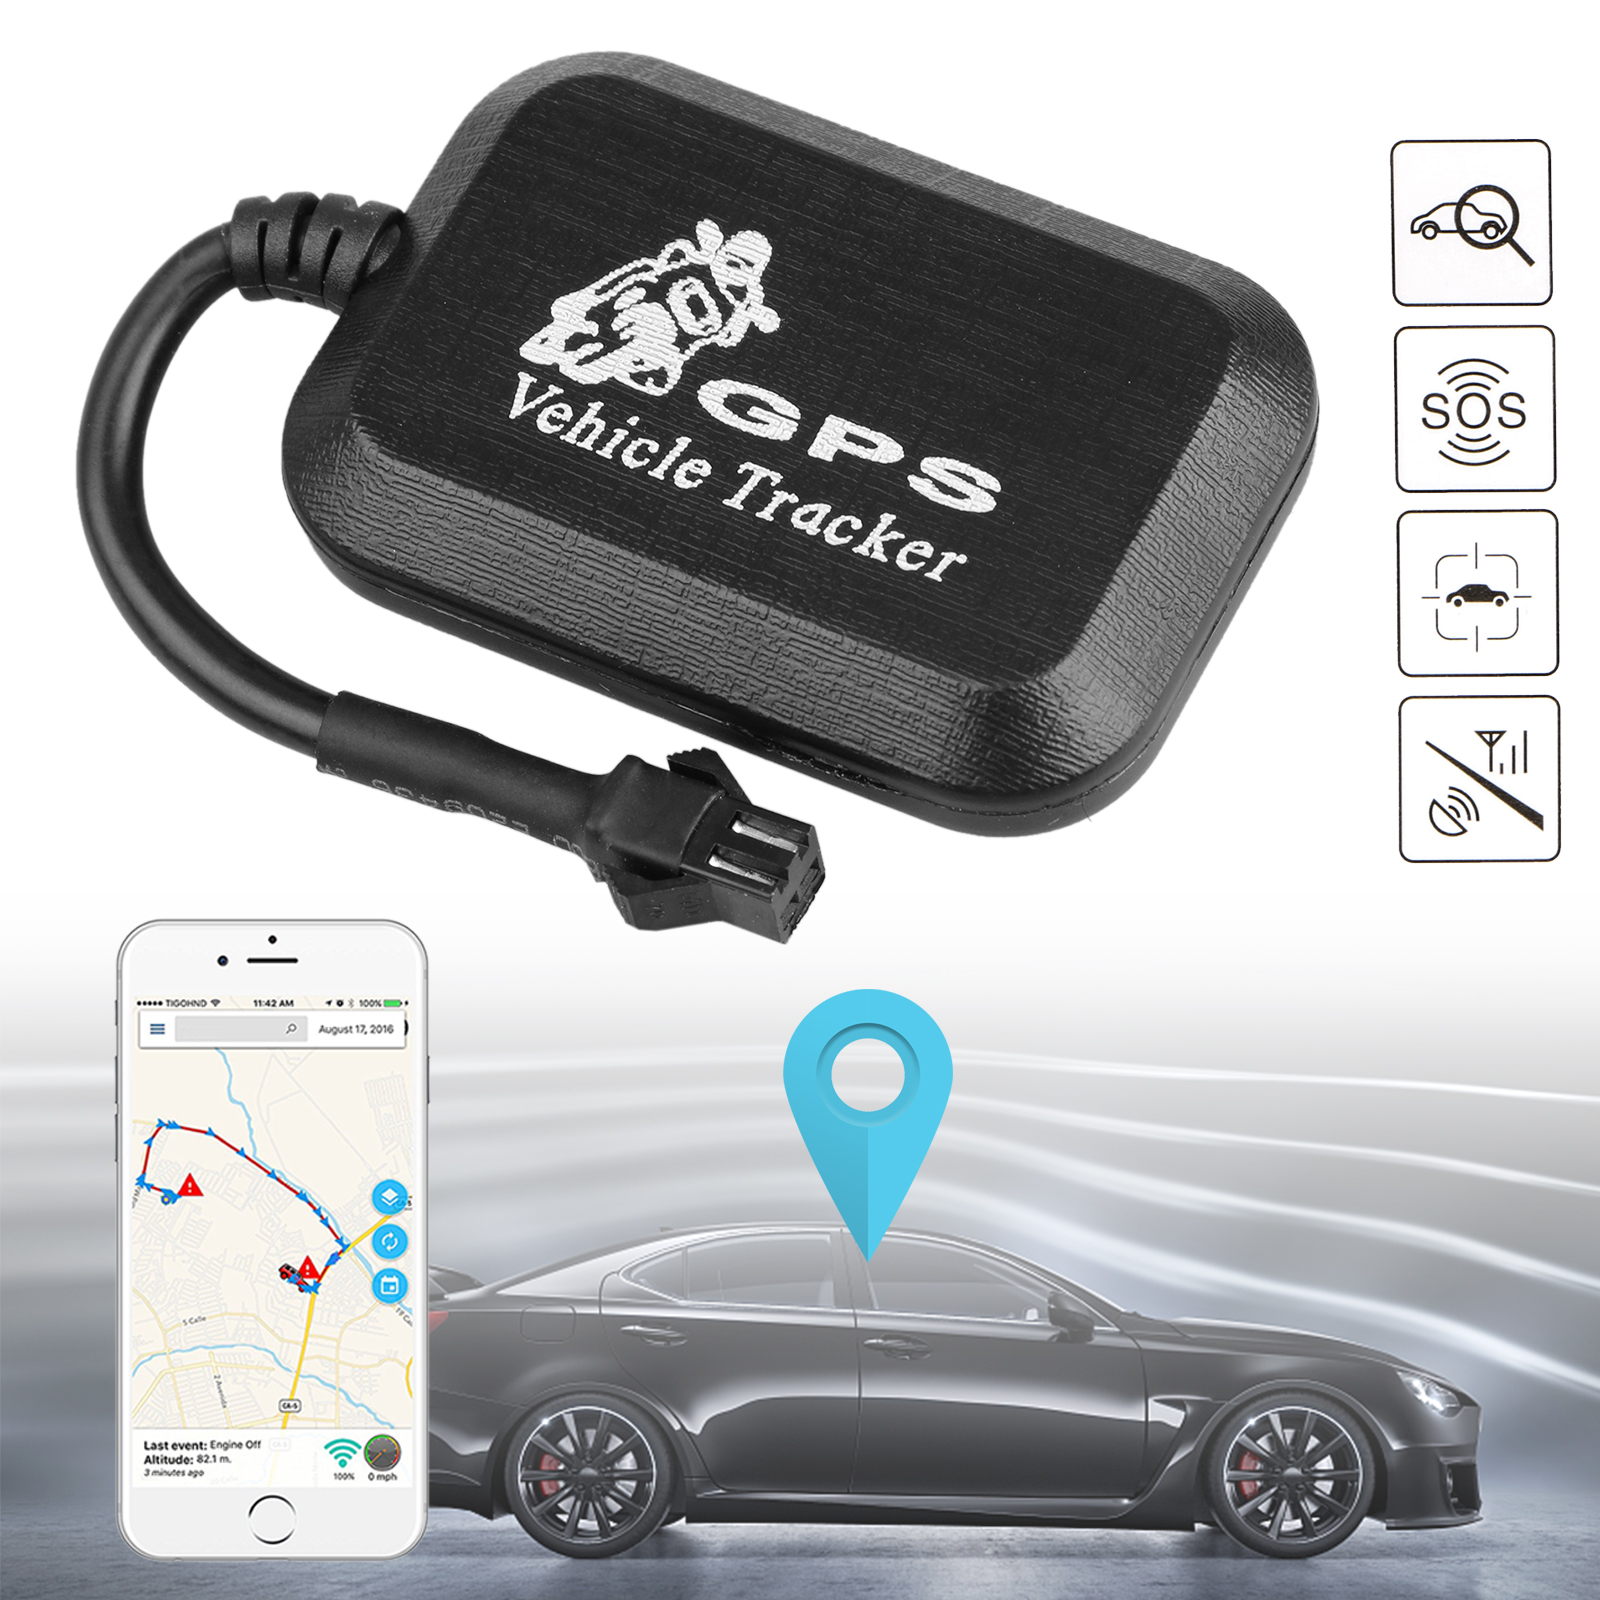 EEEkit Real Time GT005gps GPS Tracker GSM/GPRS Tracking Device Tool for Car Vehicle Motorcycle